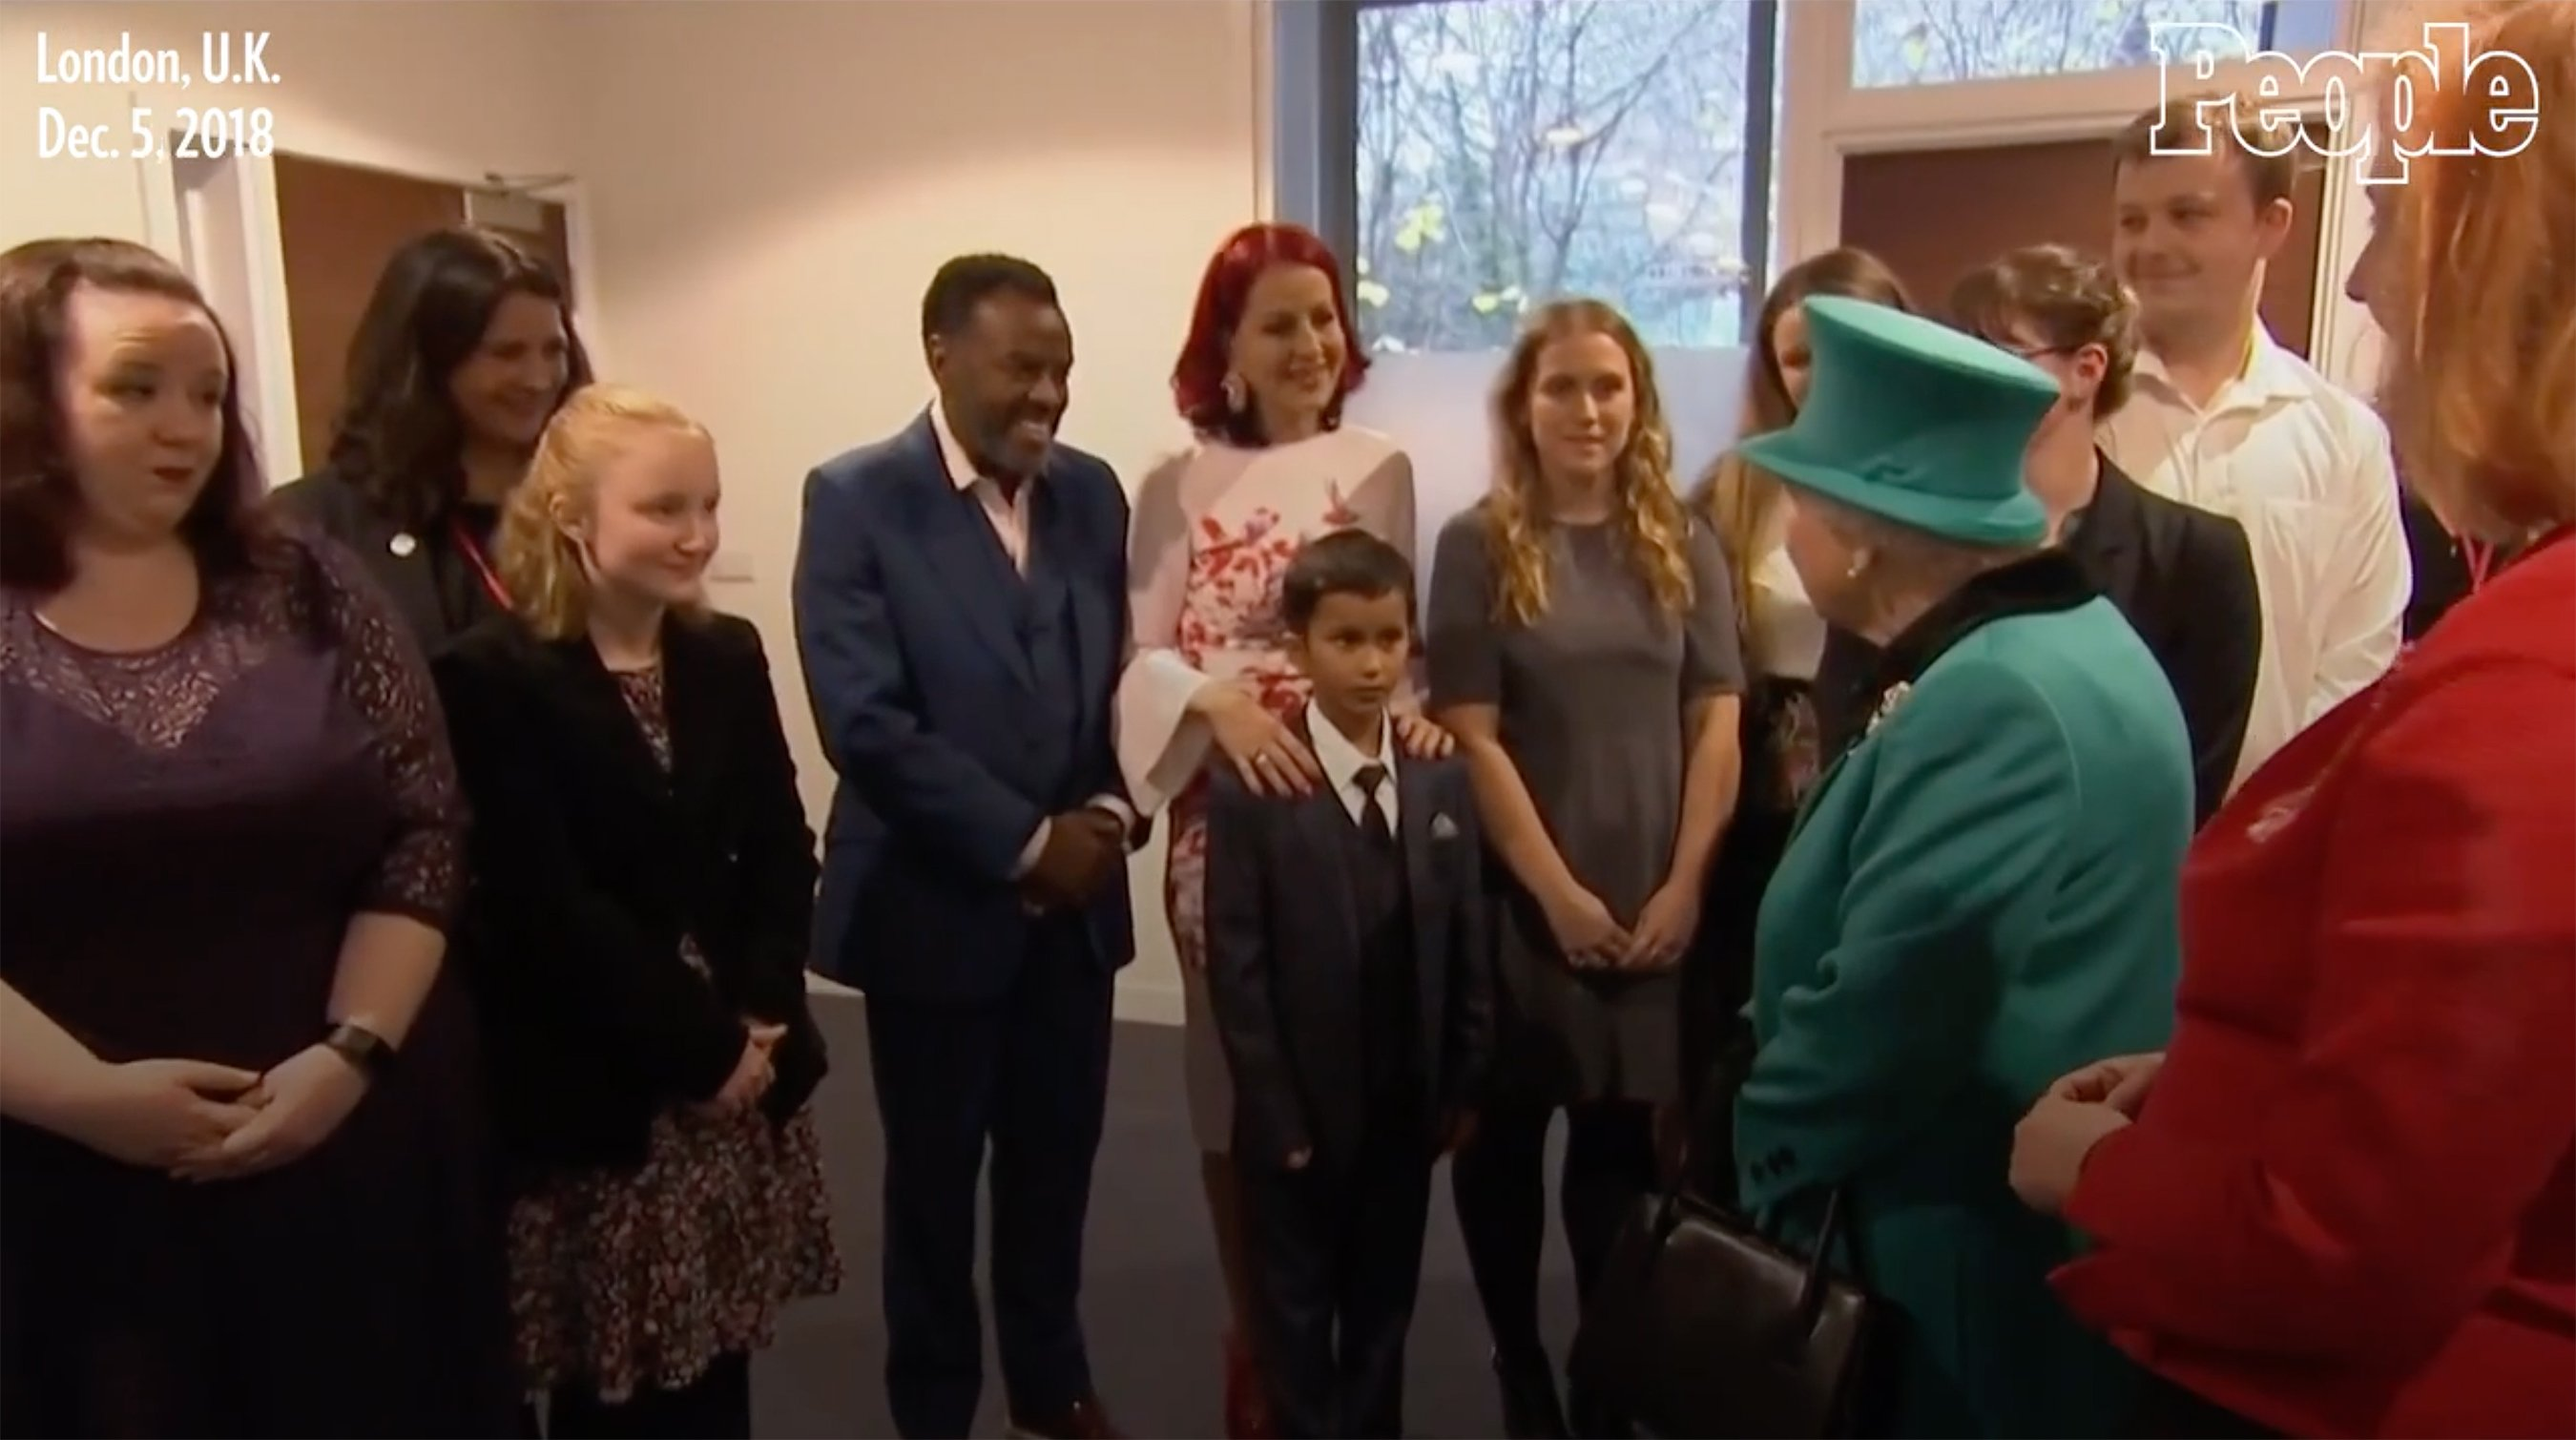 Boy, 9, Got So Overwhelmed Meeting the Queen That He Adorably Crawled Away Right in Front of Her